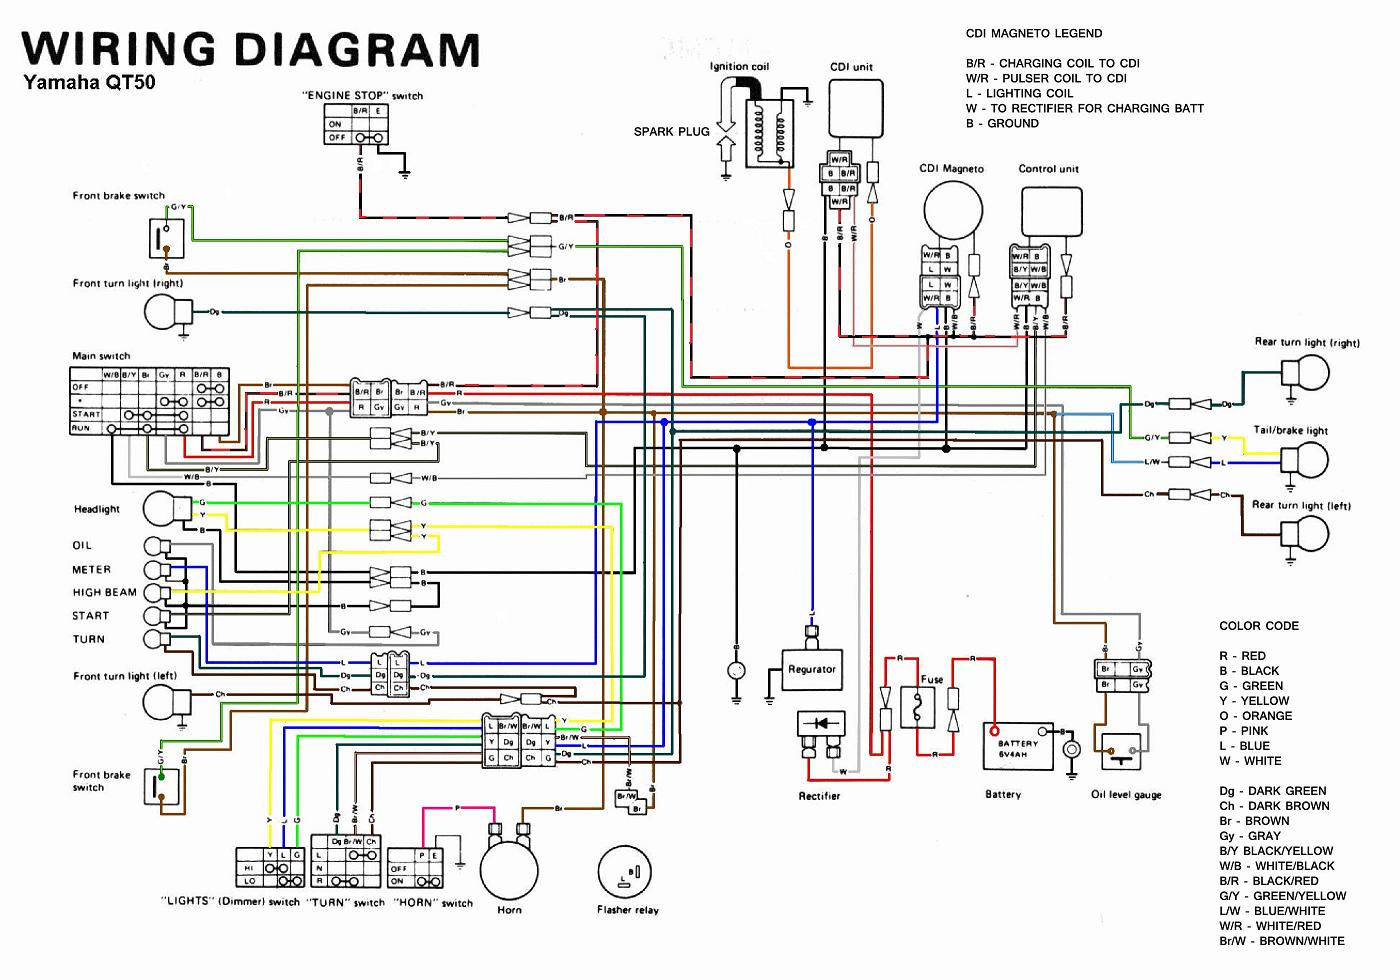 Color Code Electrical Wire Us Data Schema Chamberlain Liftmaster K41djc001 Garage Door Opener Circuit Board Yamaha Qt50 Wiring Diagram Luvin And Other Usa Chart Pdf